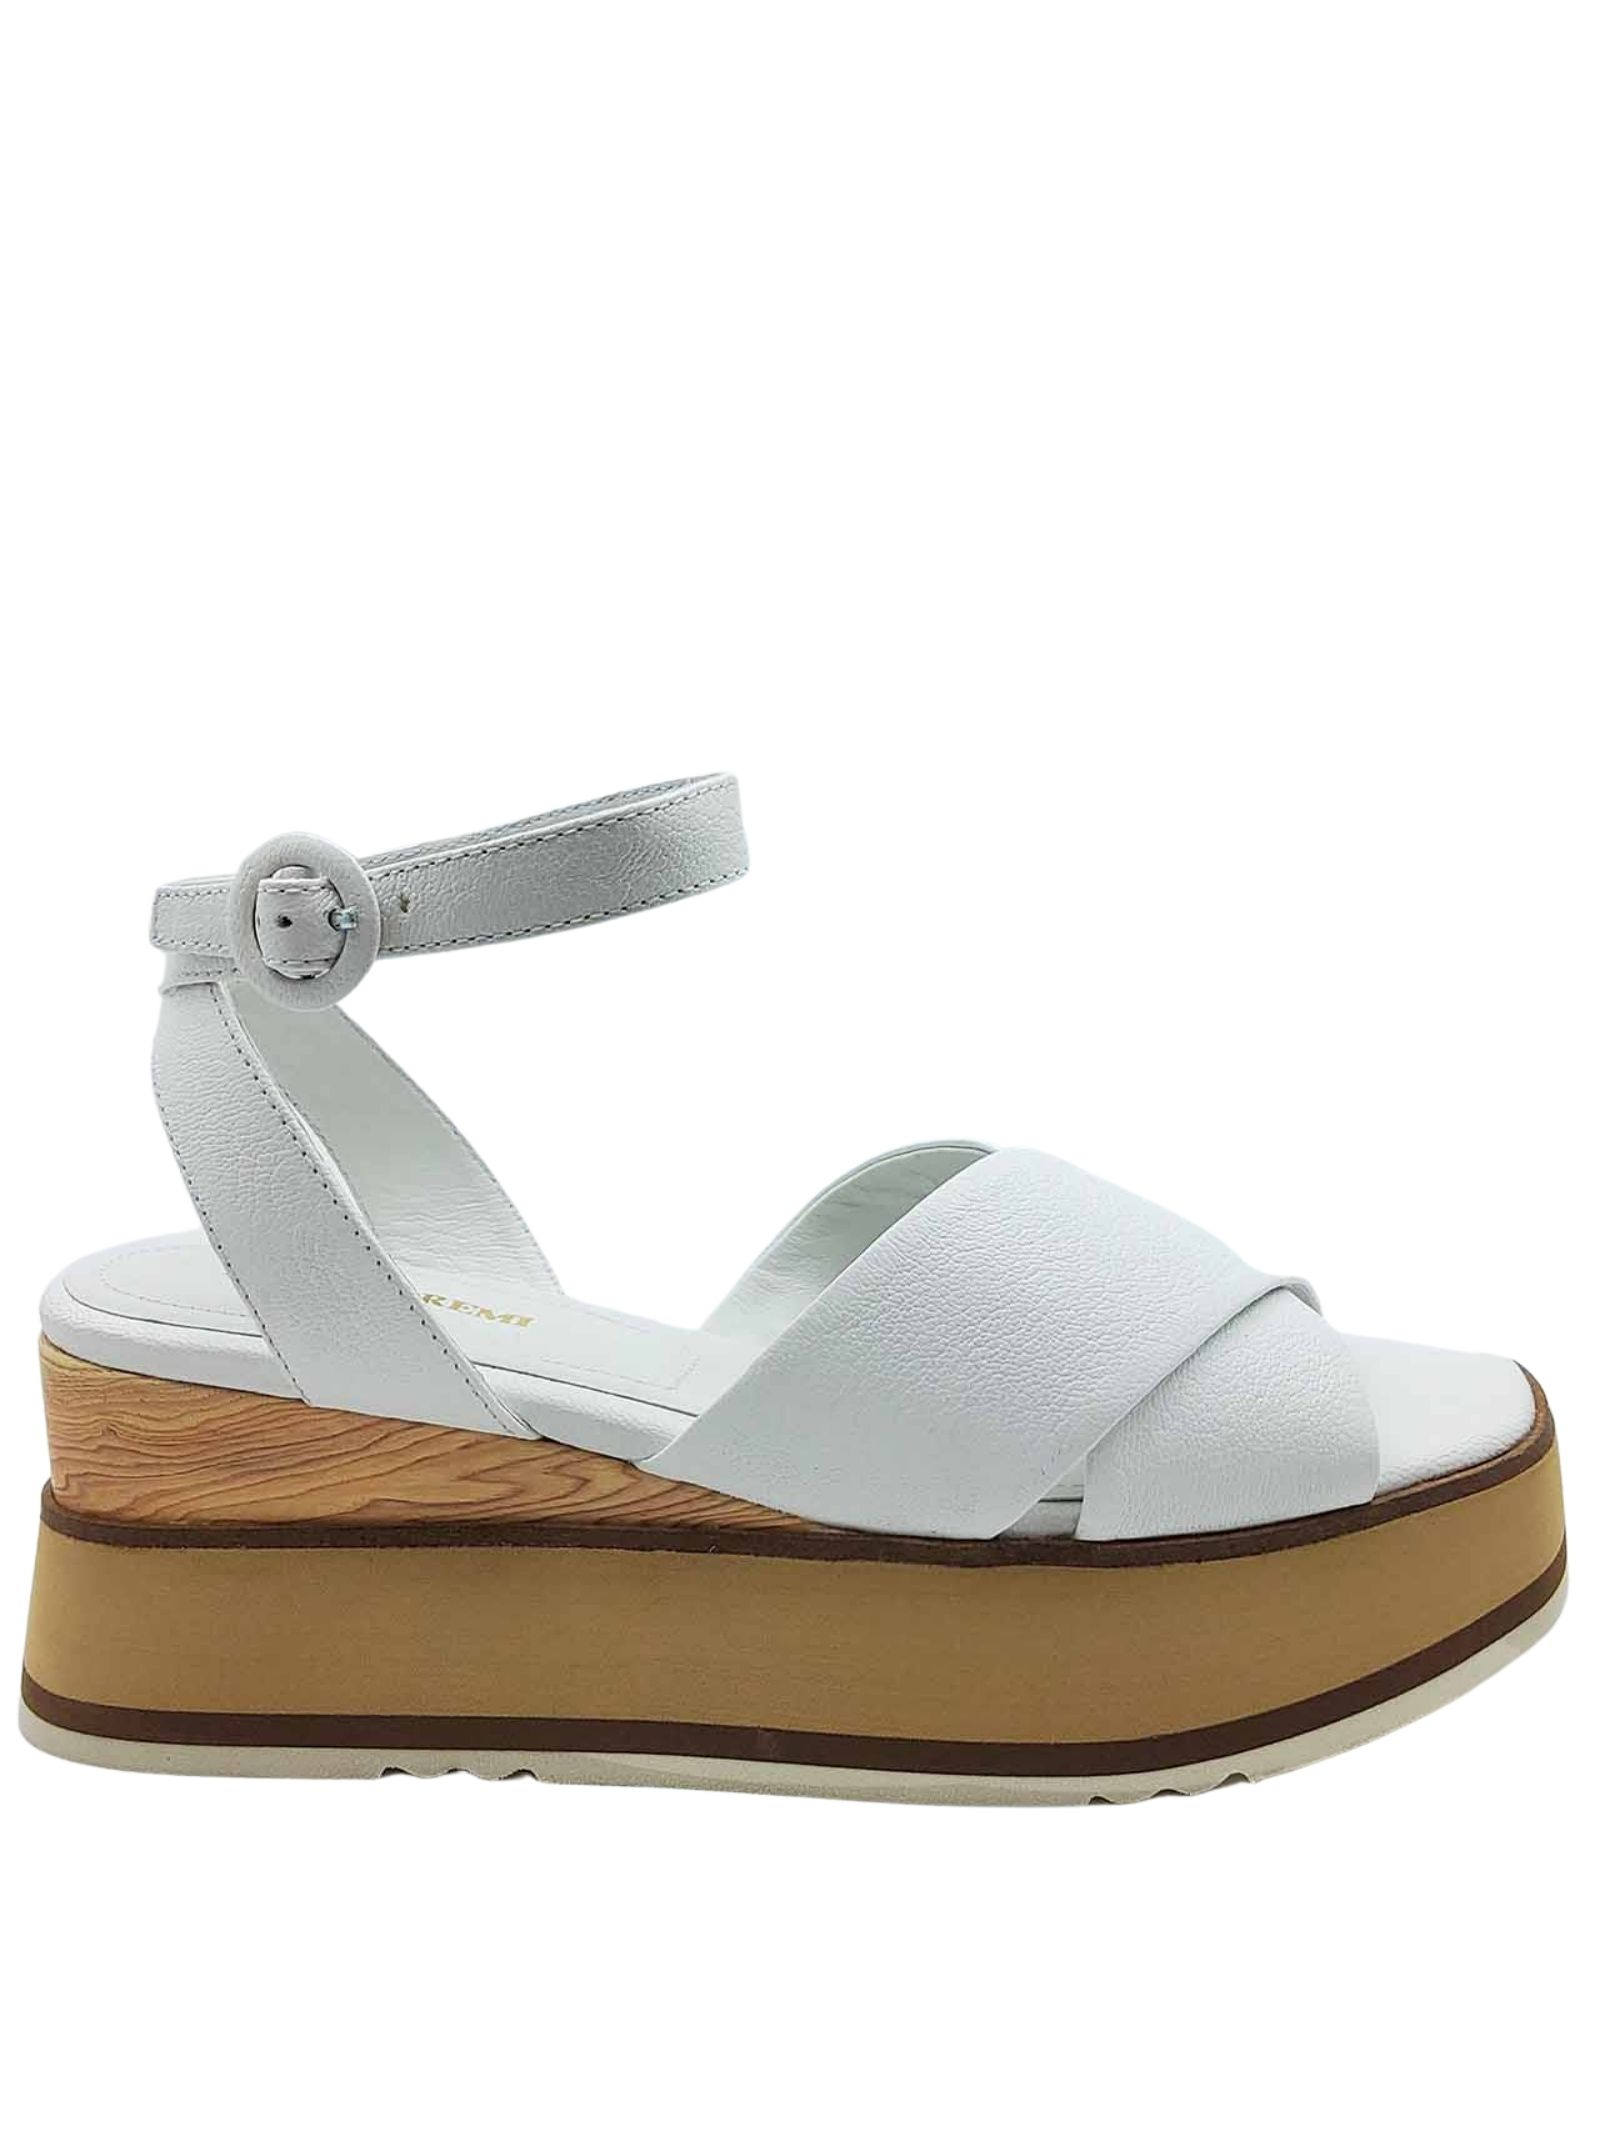 Women's Shoes White Leather Cross Sandals with Ankle Strap and Wooden Wedge Bruno Premi | Wedge Sandals | BB2602X100